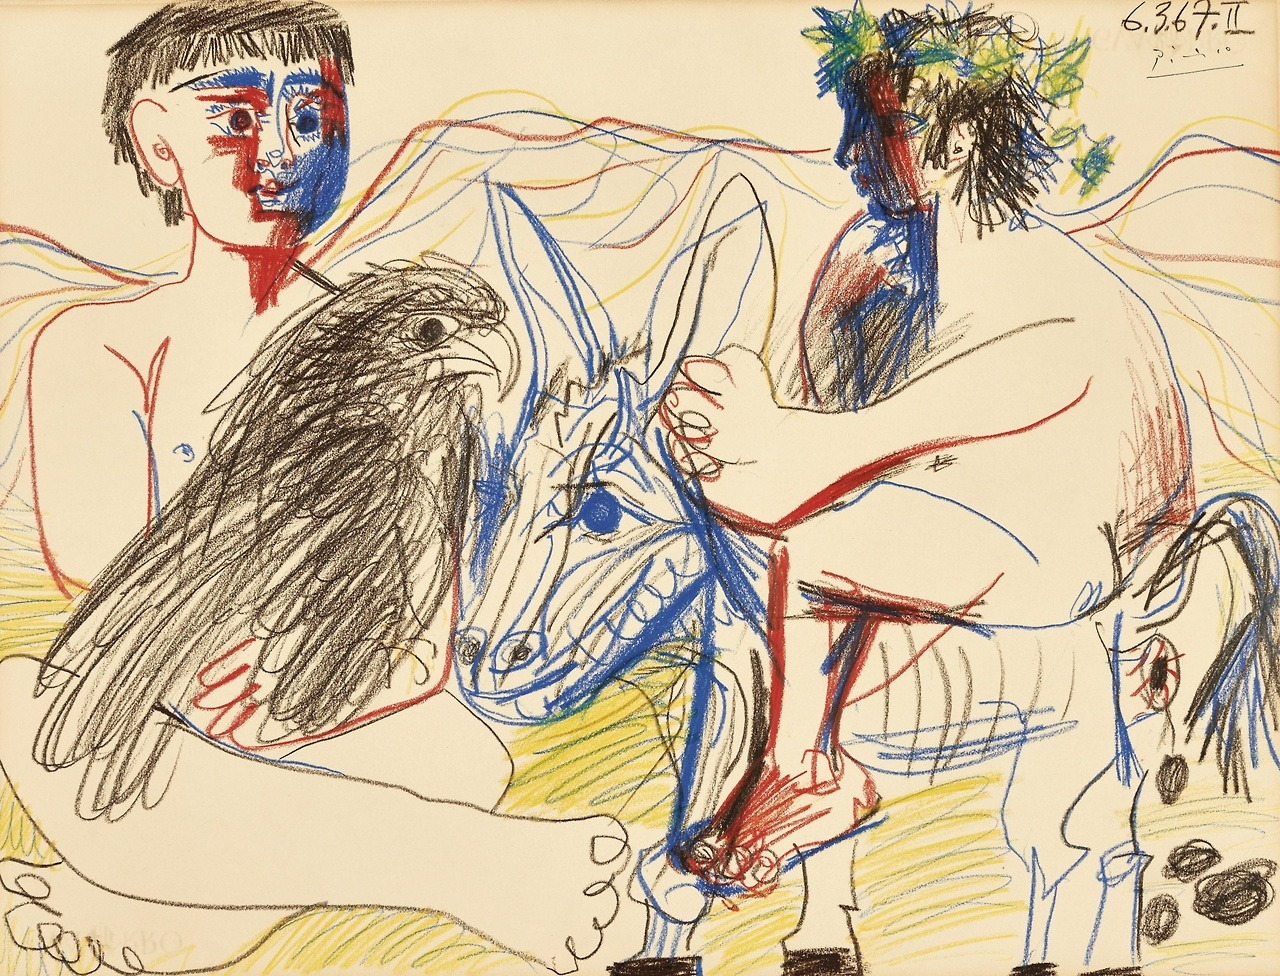 """atmospheric-minimalism: """"Pablo Picasso, Adolescents, aigle et âne II, 6-March/1967, Colored crayons on paper, 49,5 x 65 cm """""""